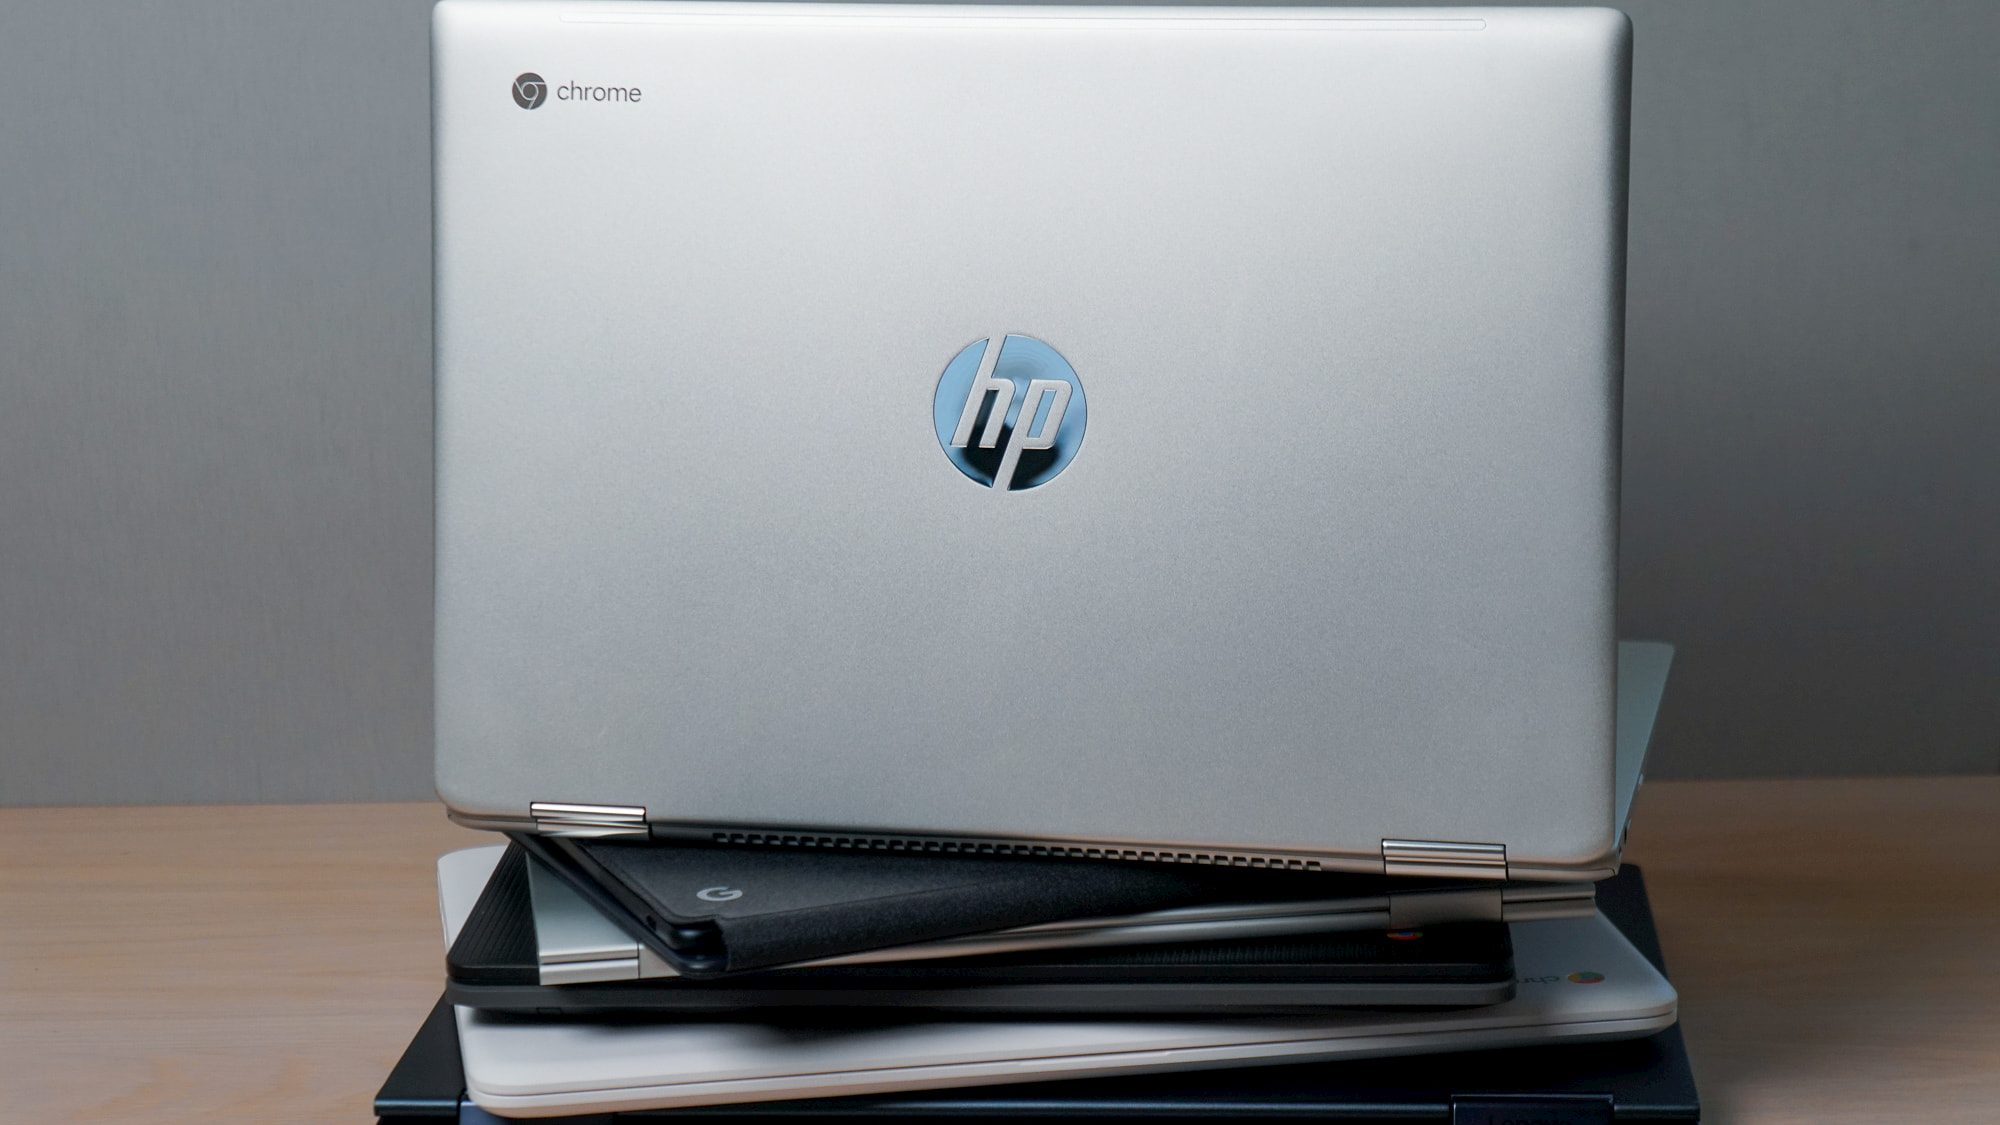 HP Chromebook x360 14 G1 Review: The World's Most Powerful Chromebook [VIDEO]